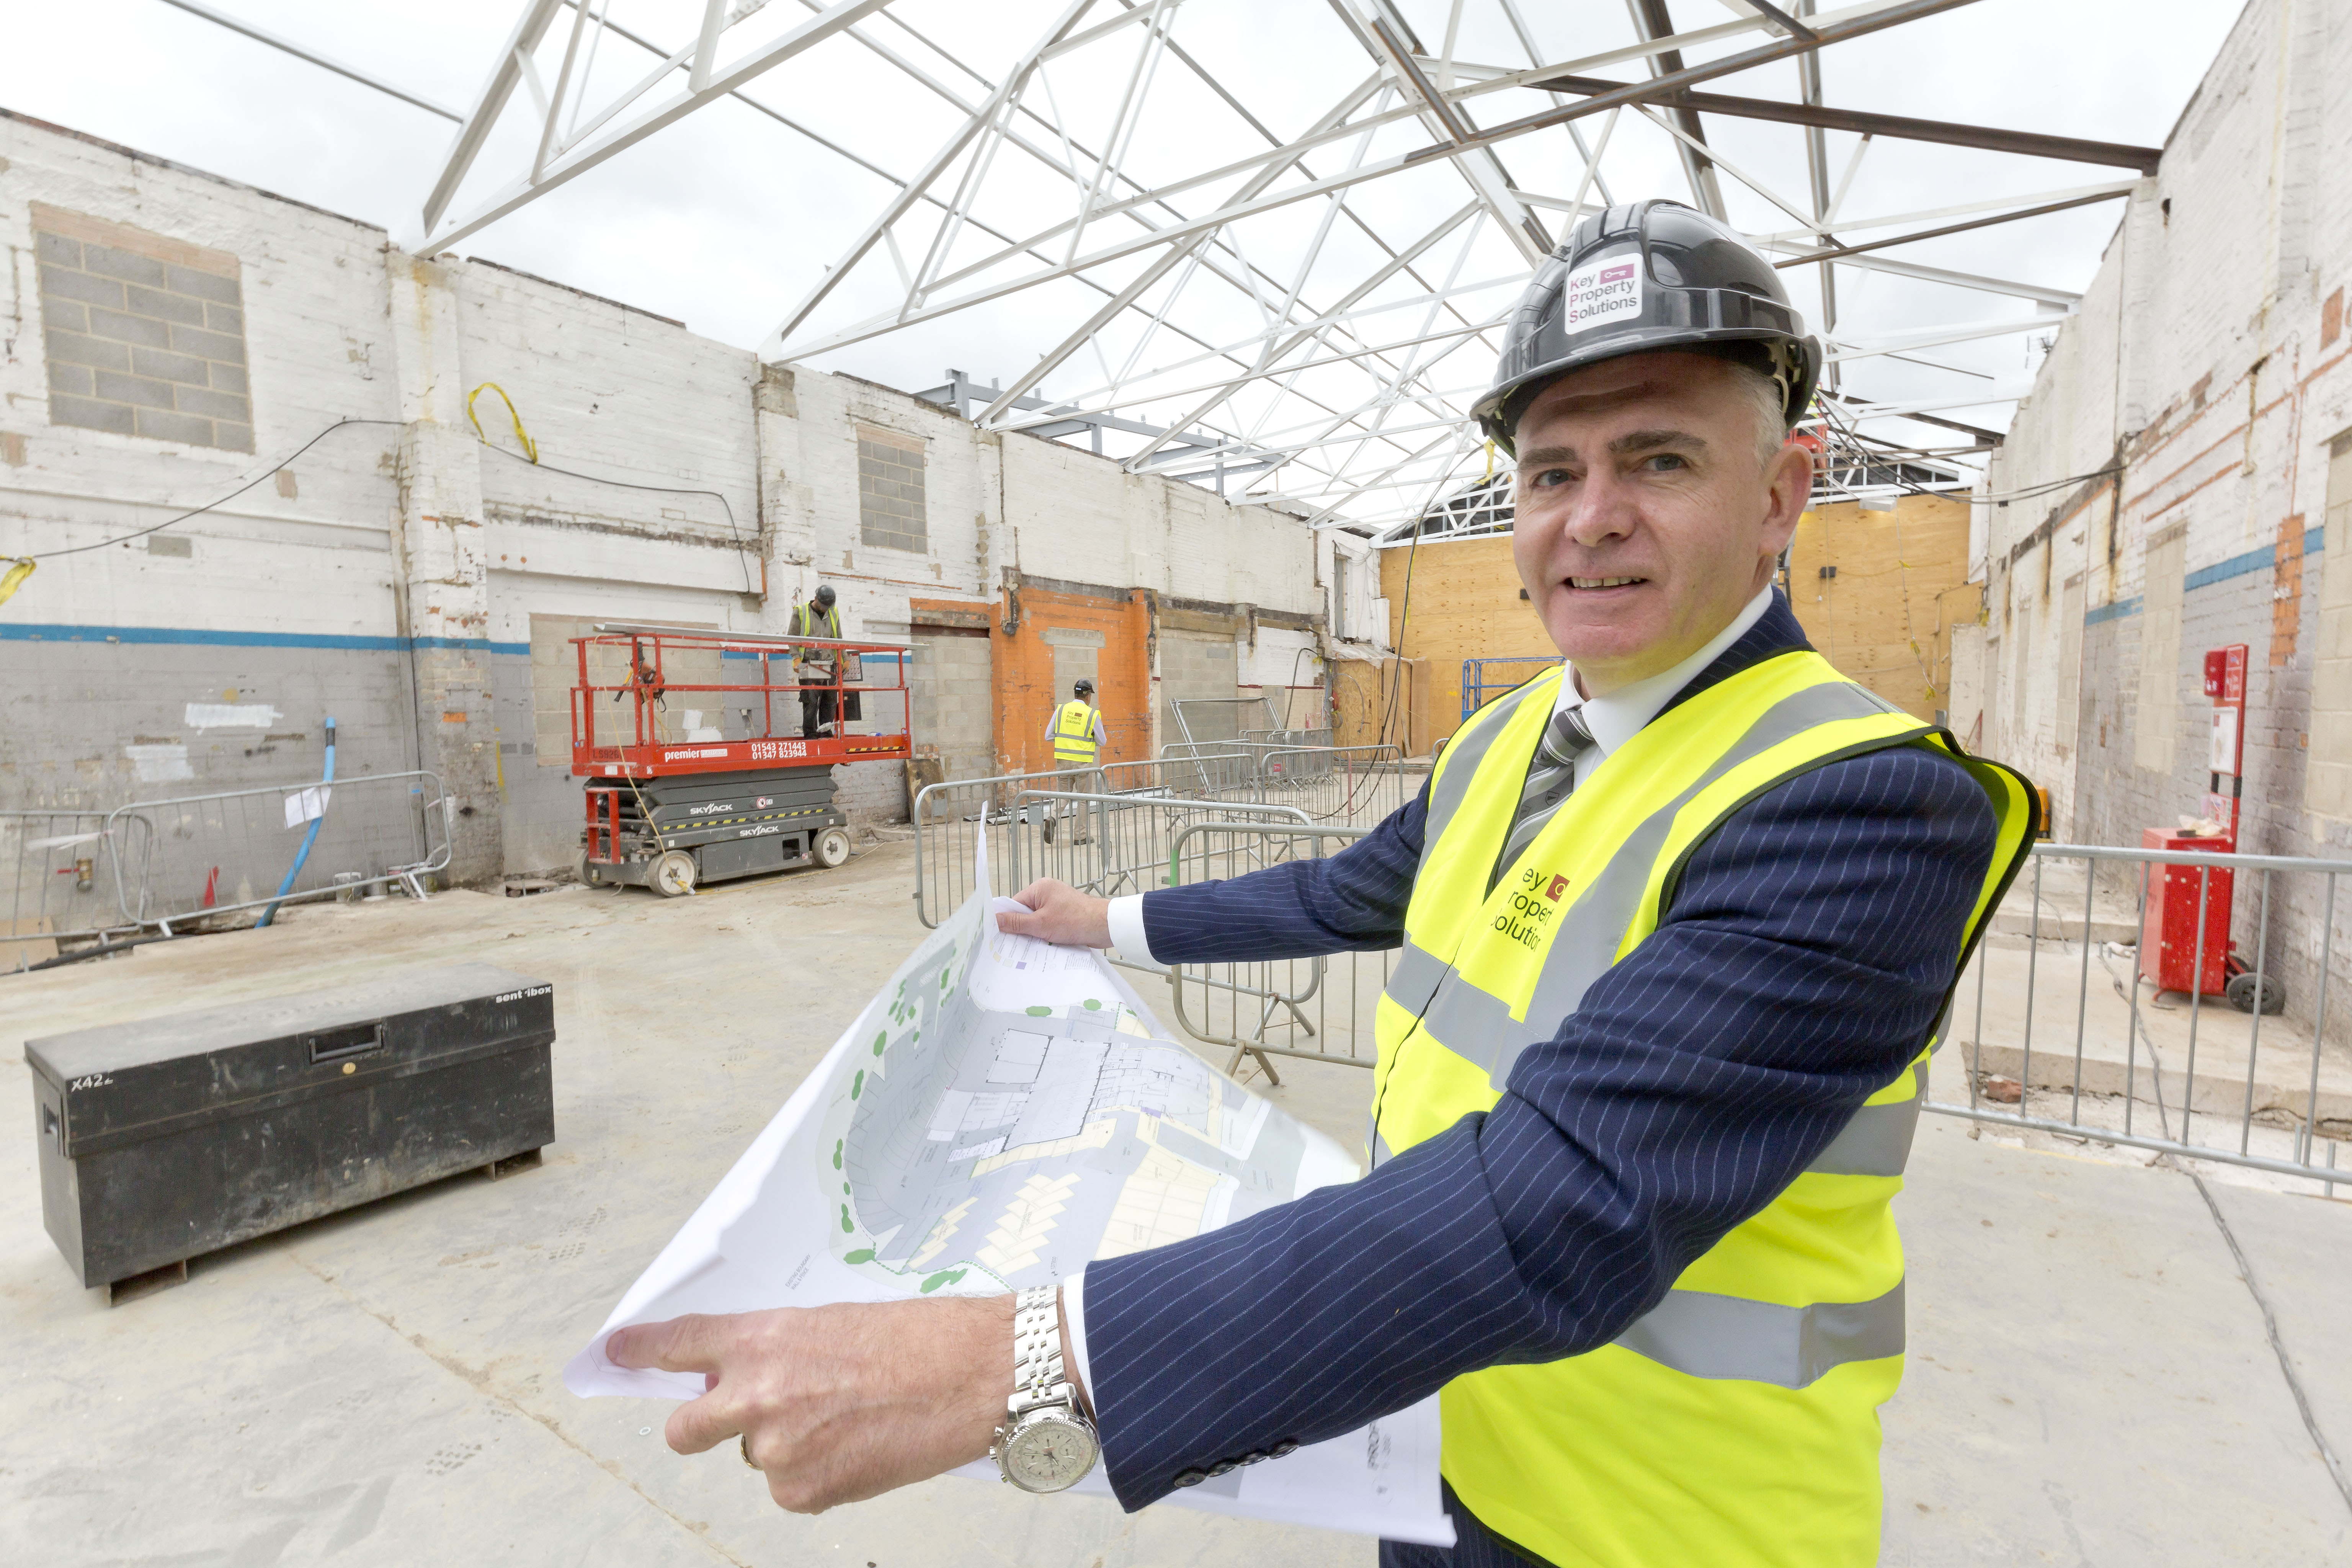 Head of Business appointed at ongoing Guiseley refurbishment